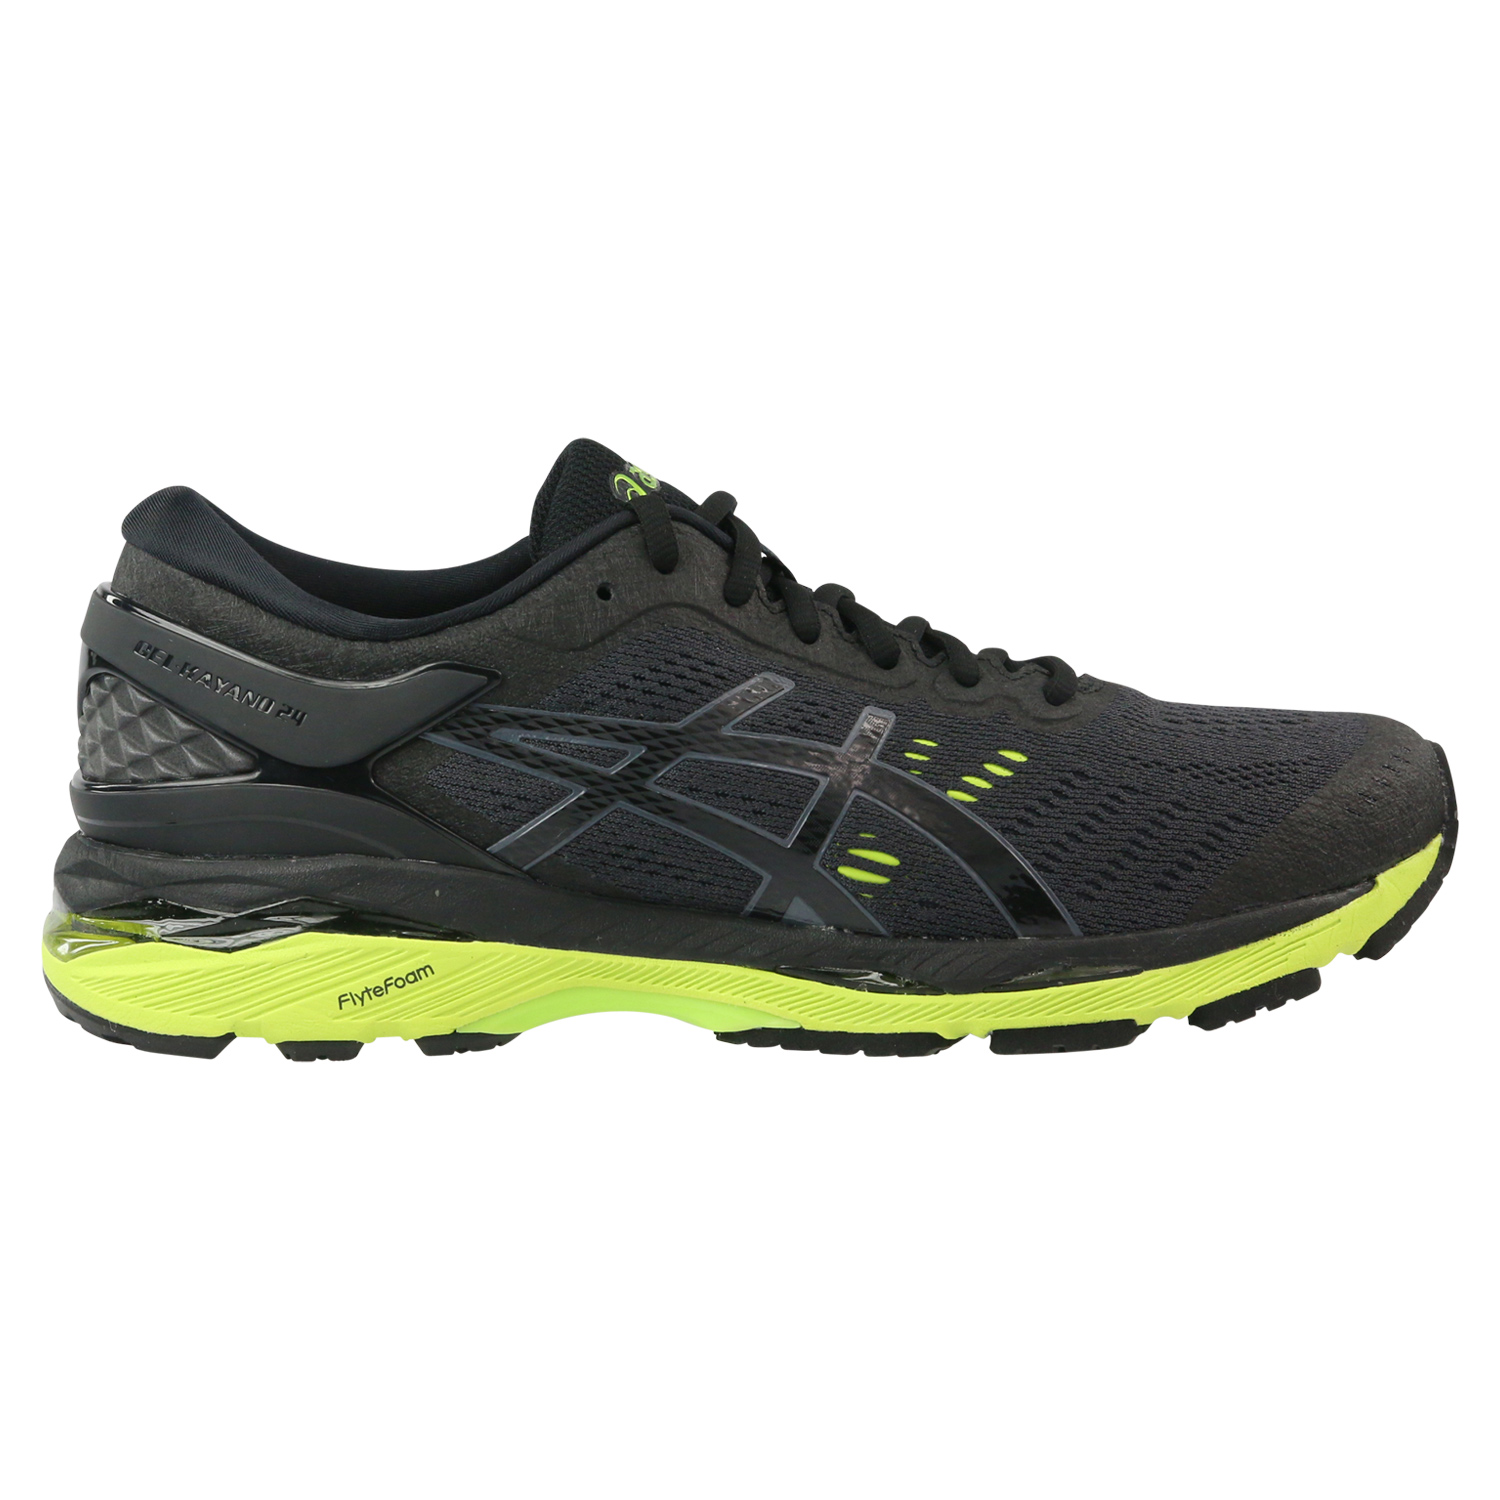 asics gel kayano 24 laufschuhe running shoes schuhe. Black Bedroom Furniture Sets. Home Design Ideas